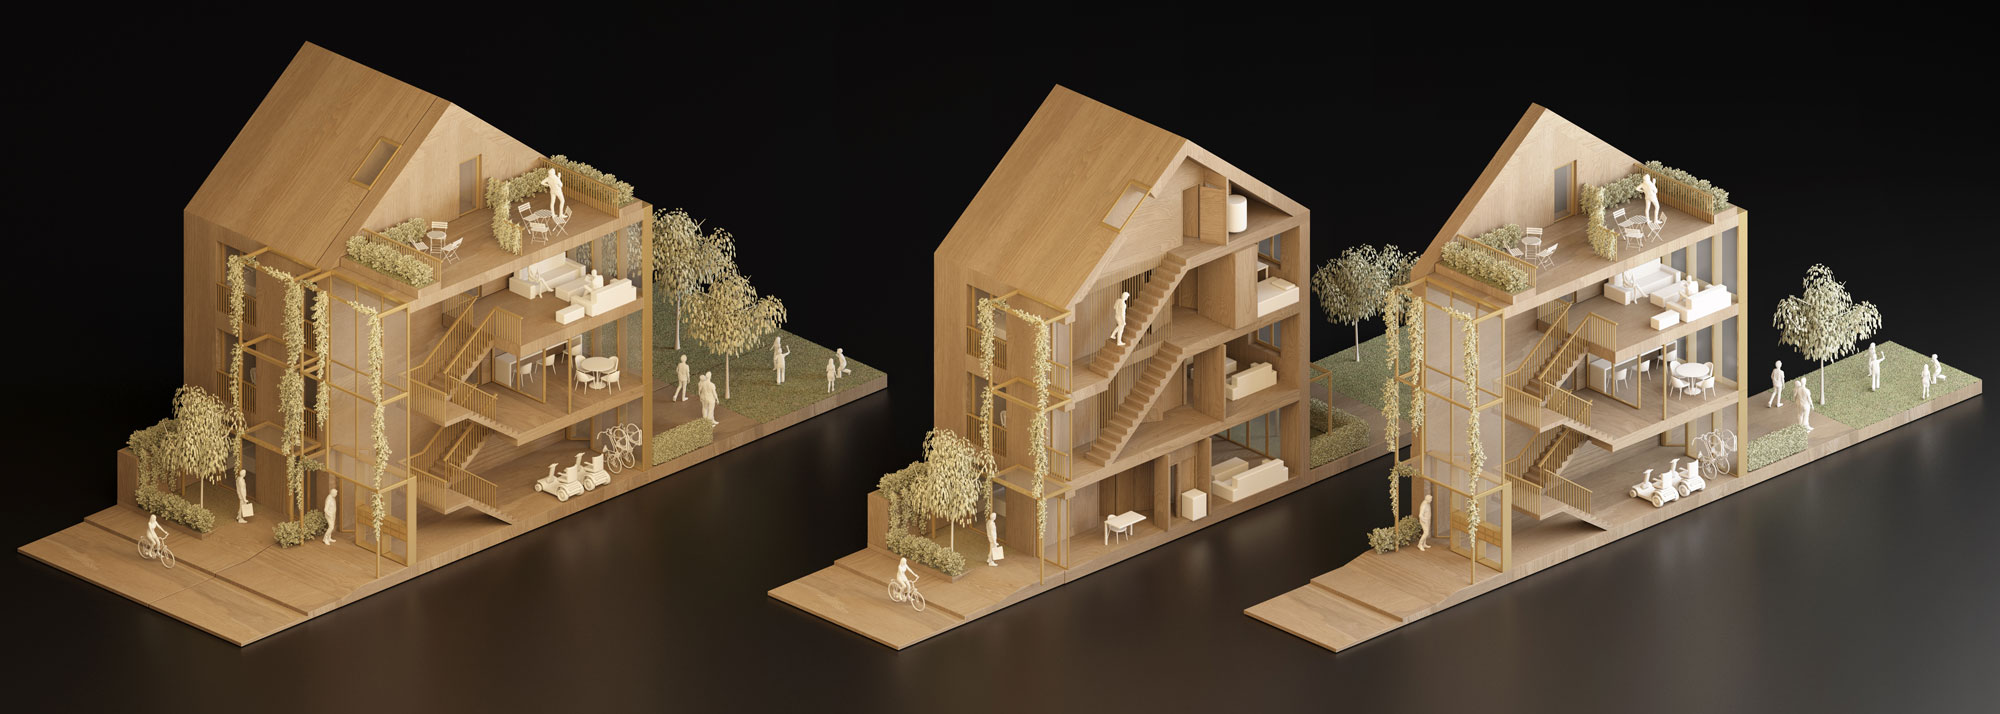 connector-housing-home-of-2030-openstudio-architects-model-section